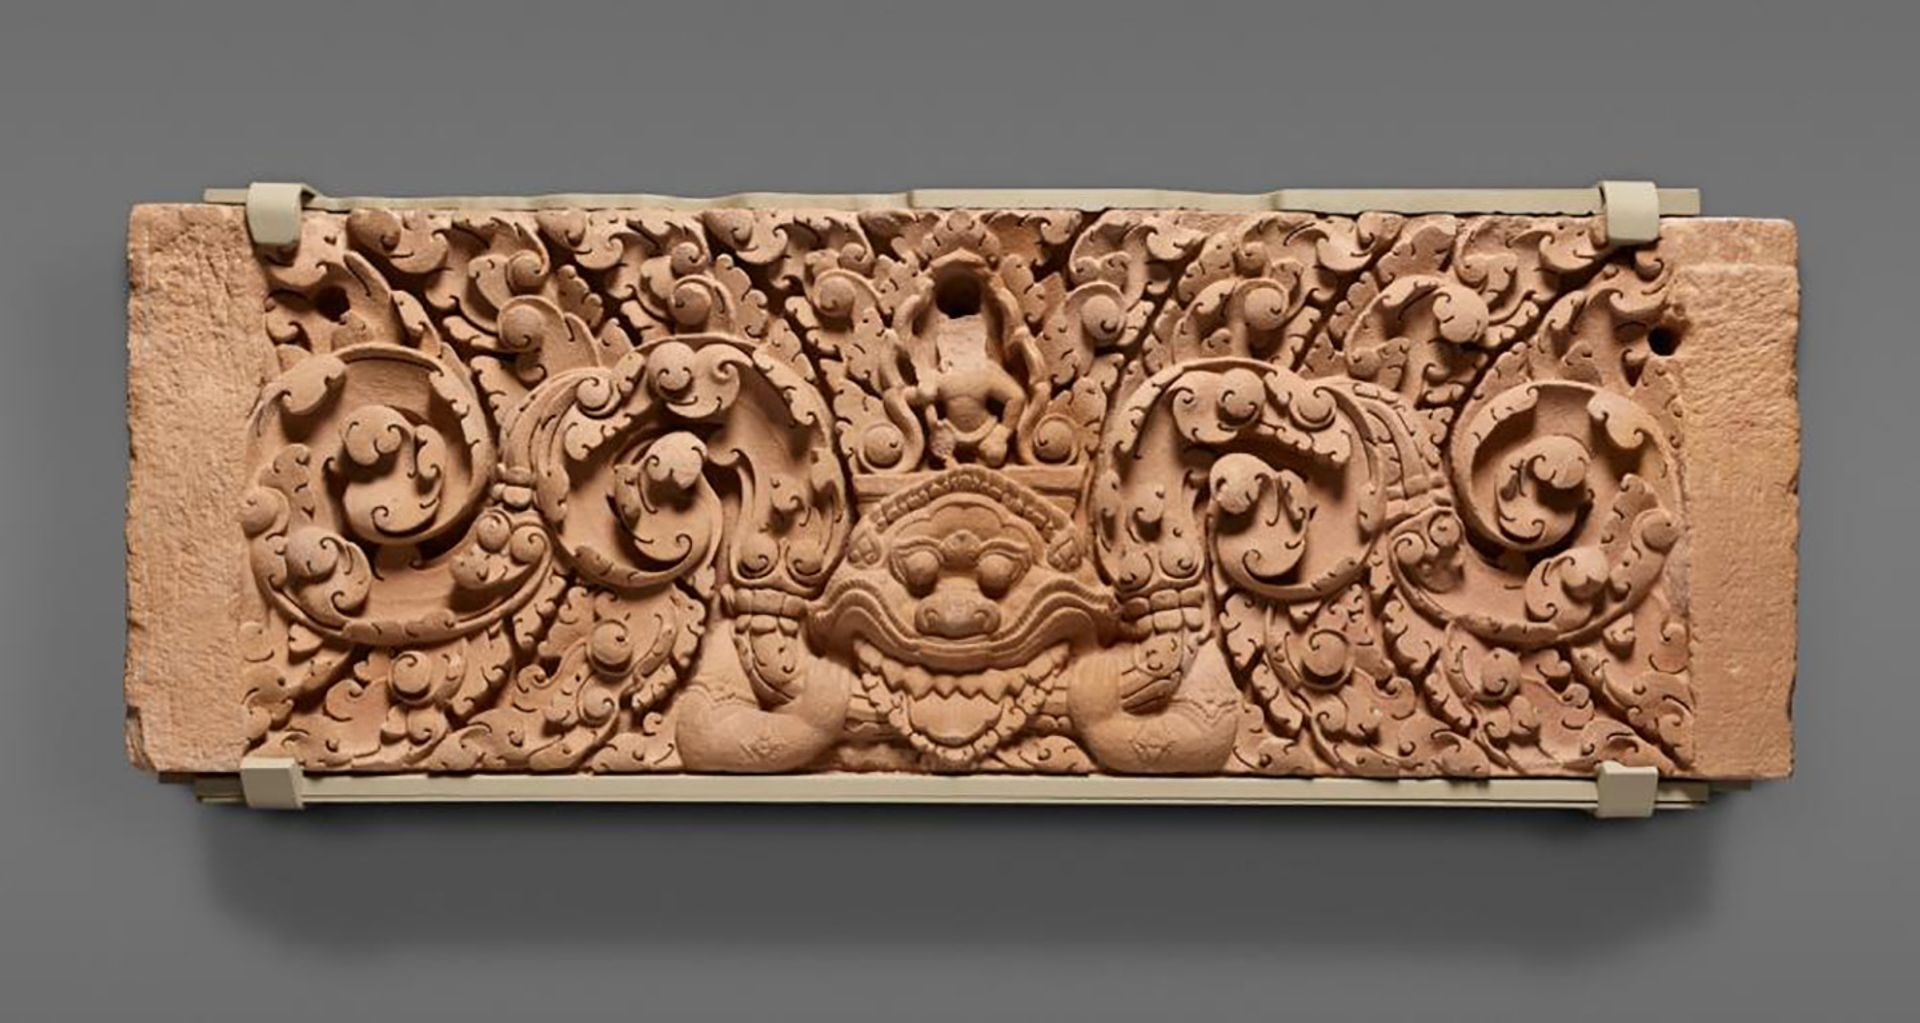 A sandstone lintel from Khao Lon Temple in northeastern Thailand from around 975 to 1025 Asian Art Museum